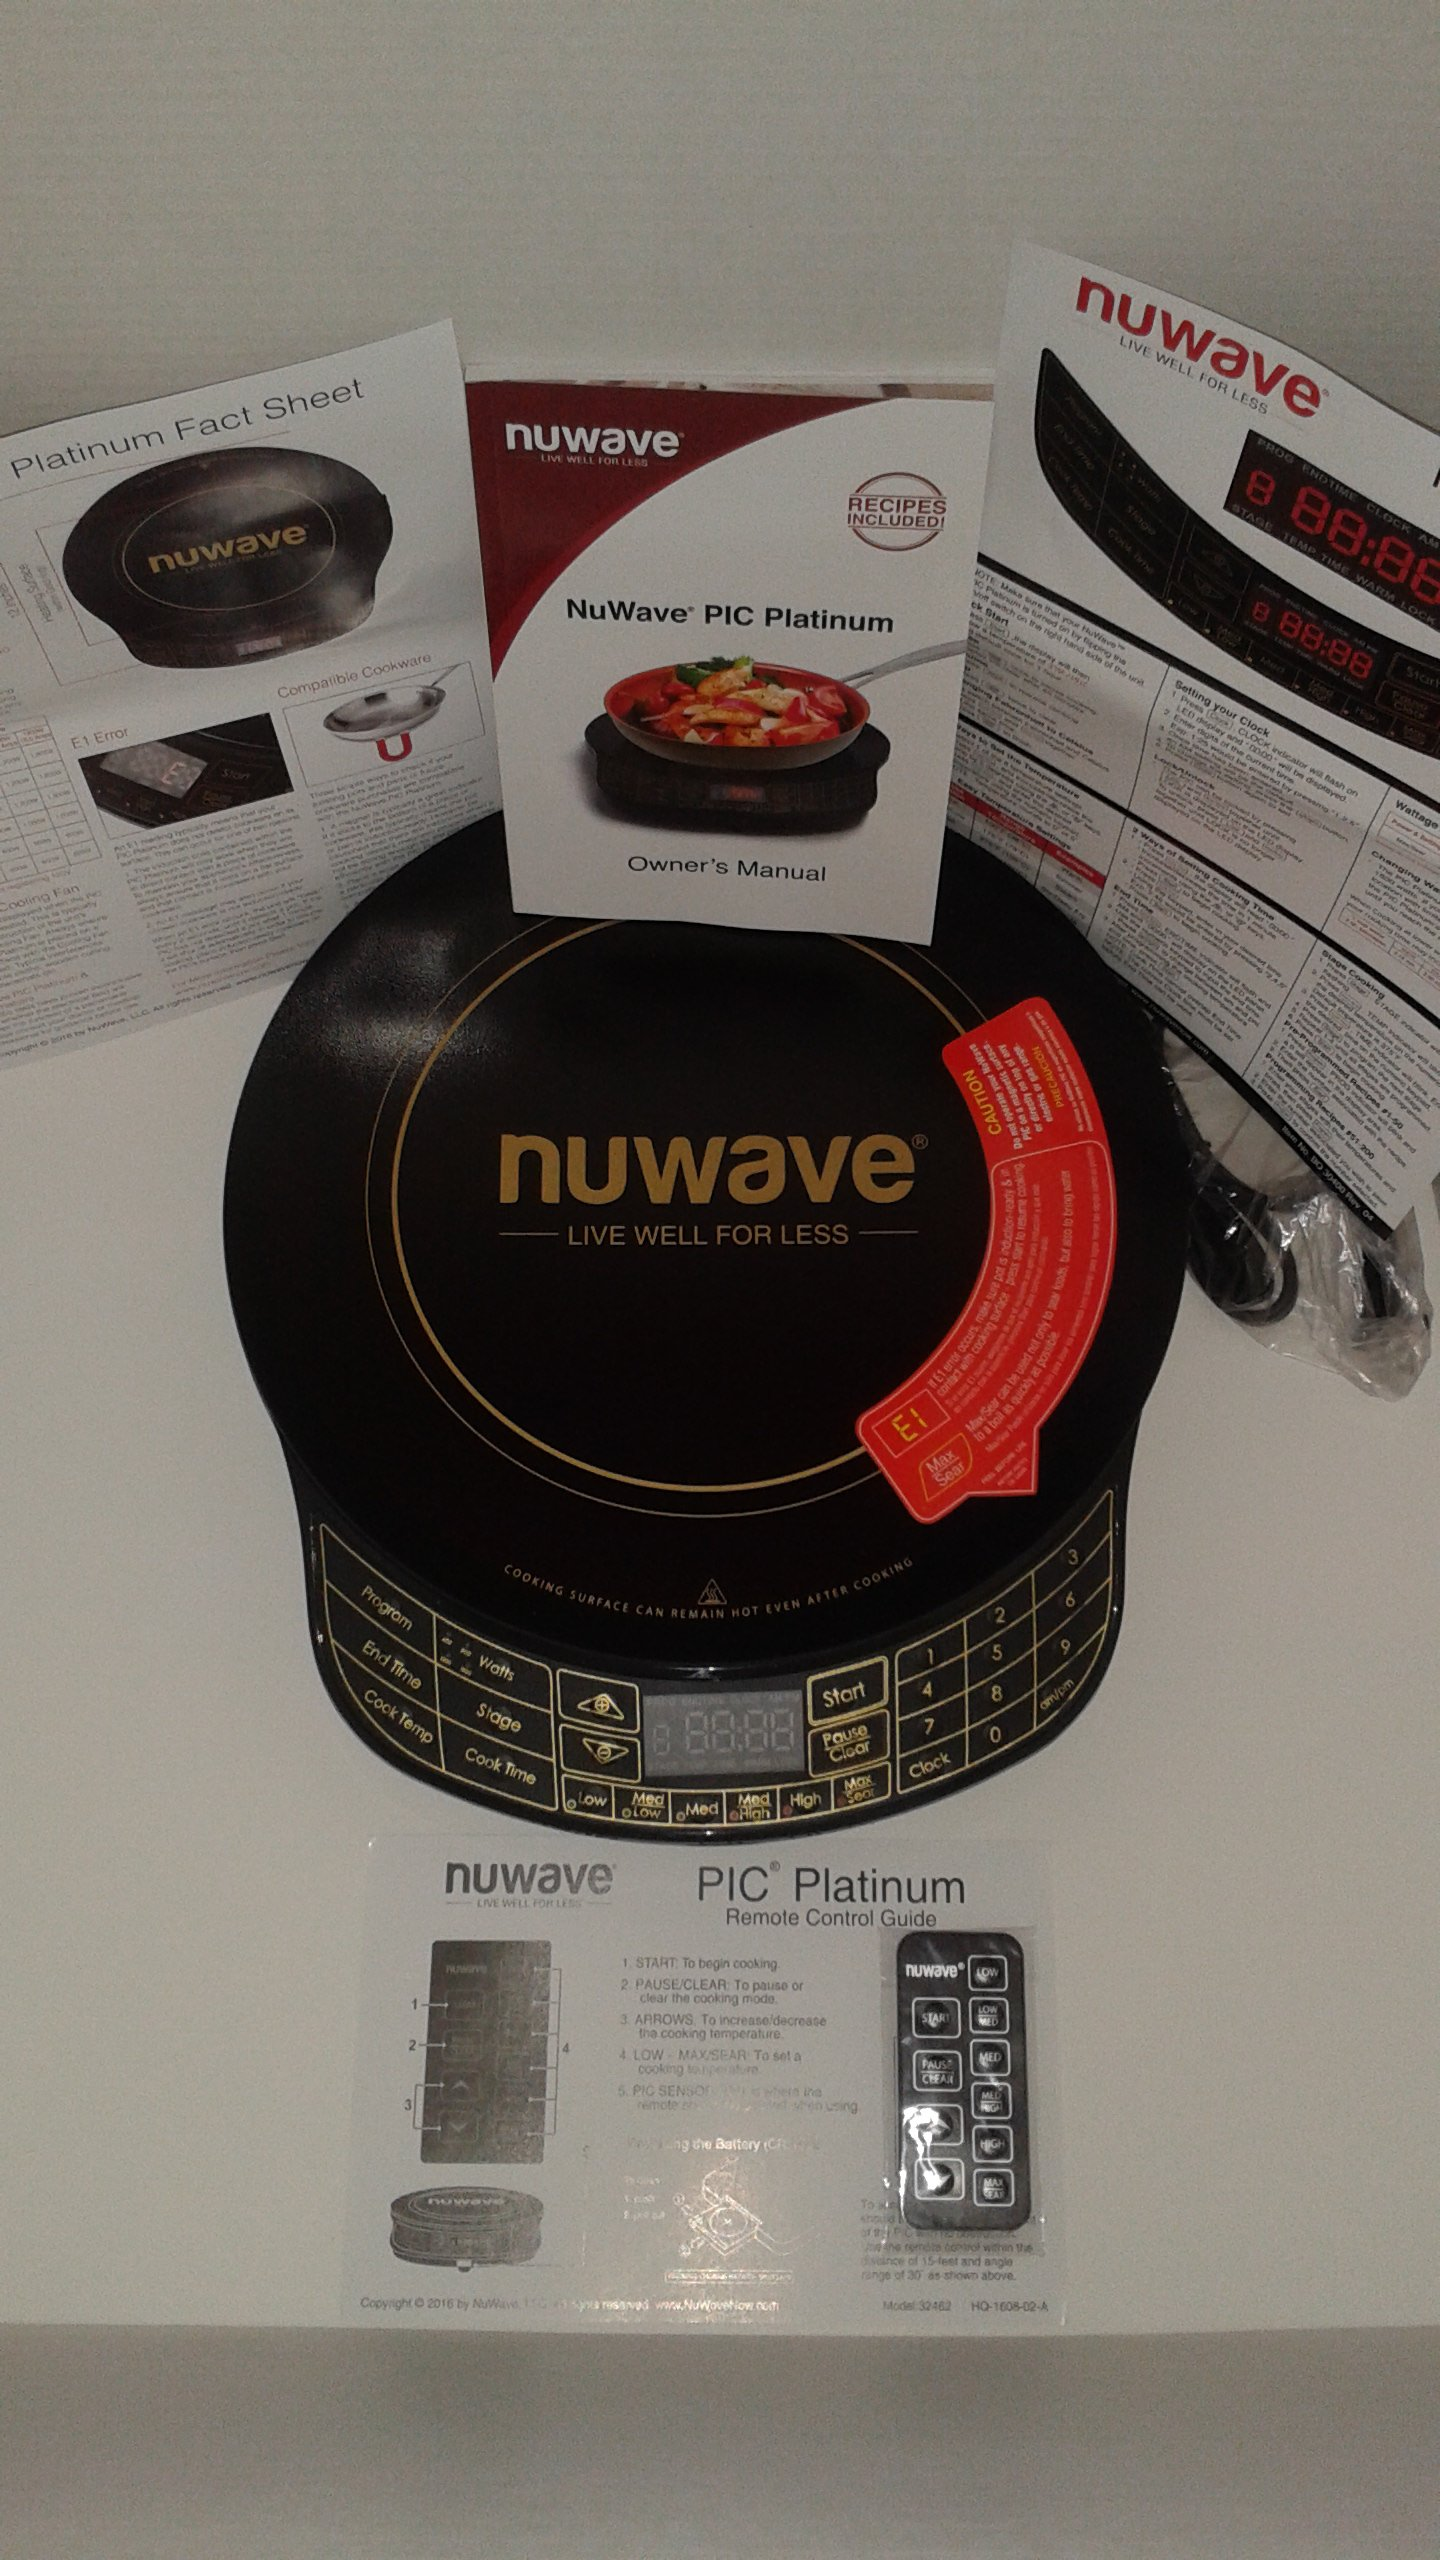 NuWave Platinum 30401 Precision Induction Cooktop, Black with Remote and Advanced Features for 2017 by NuWave (Image #3)